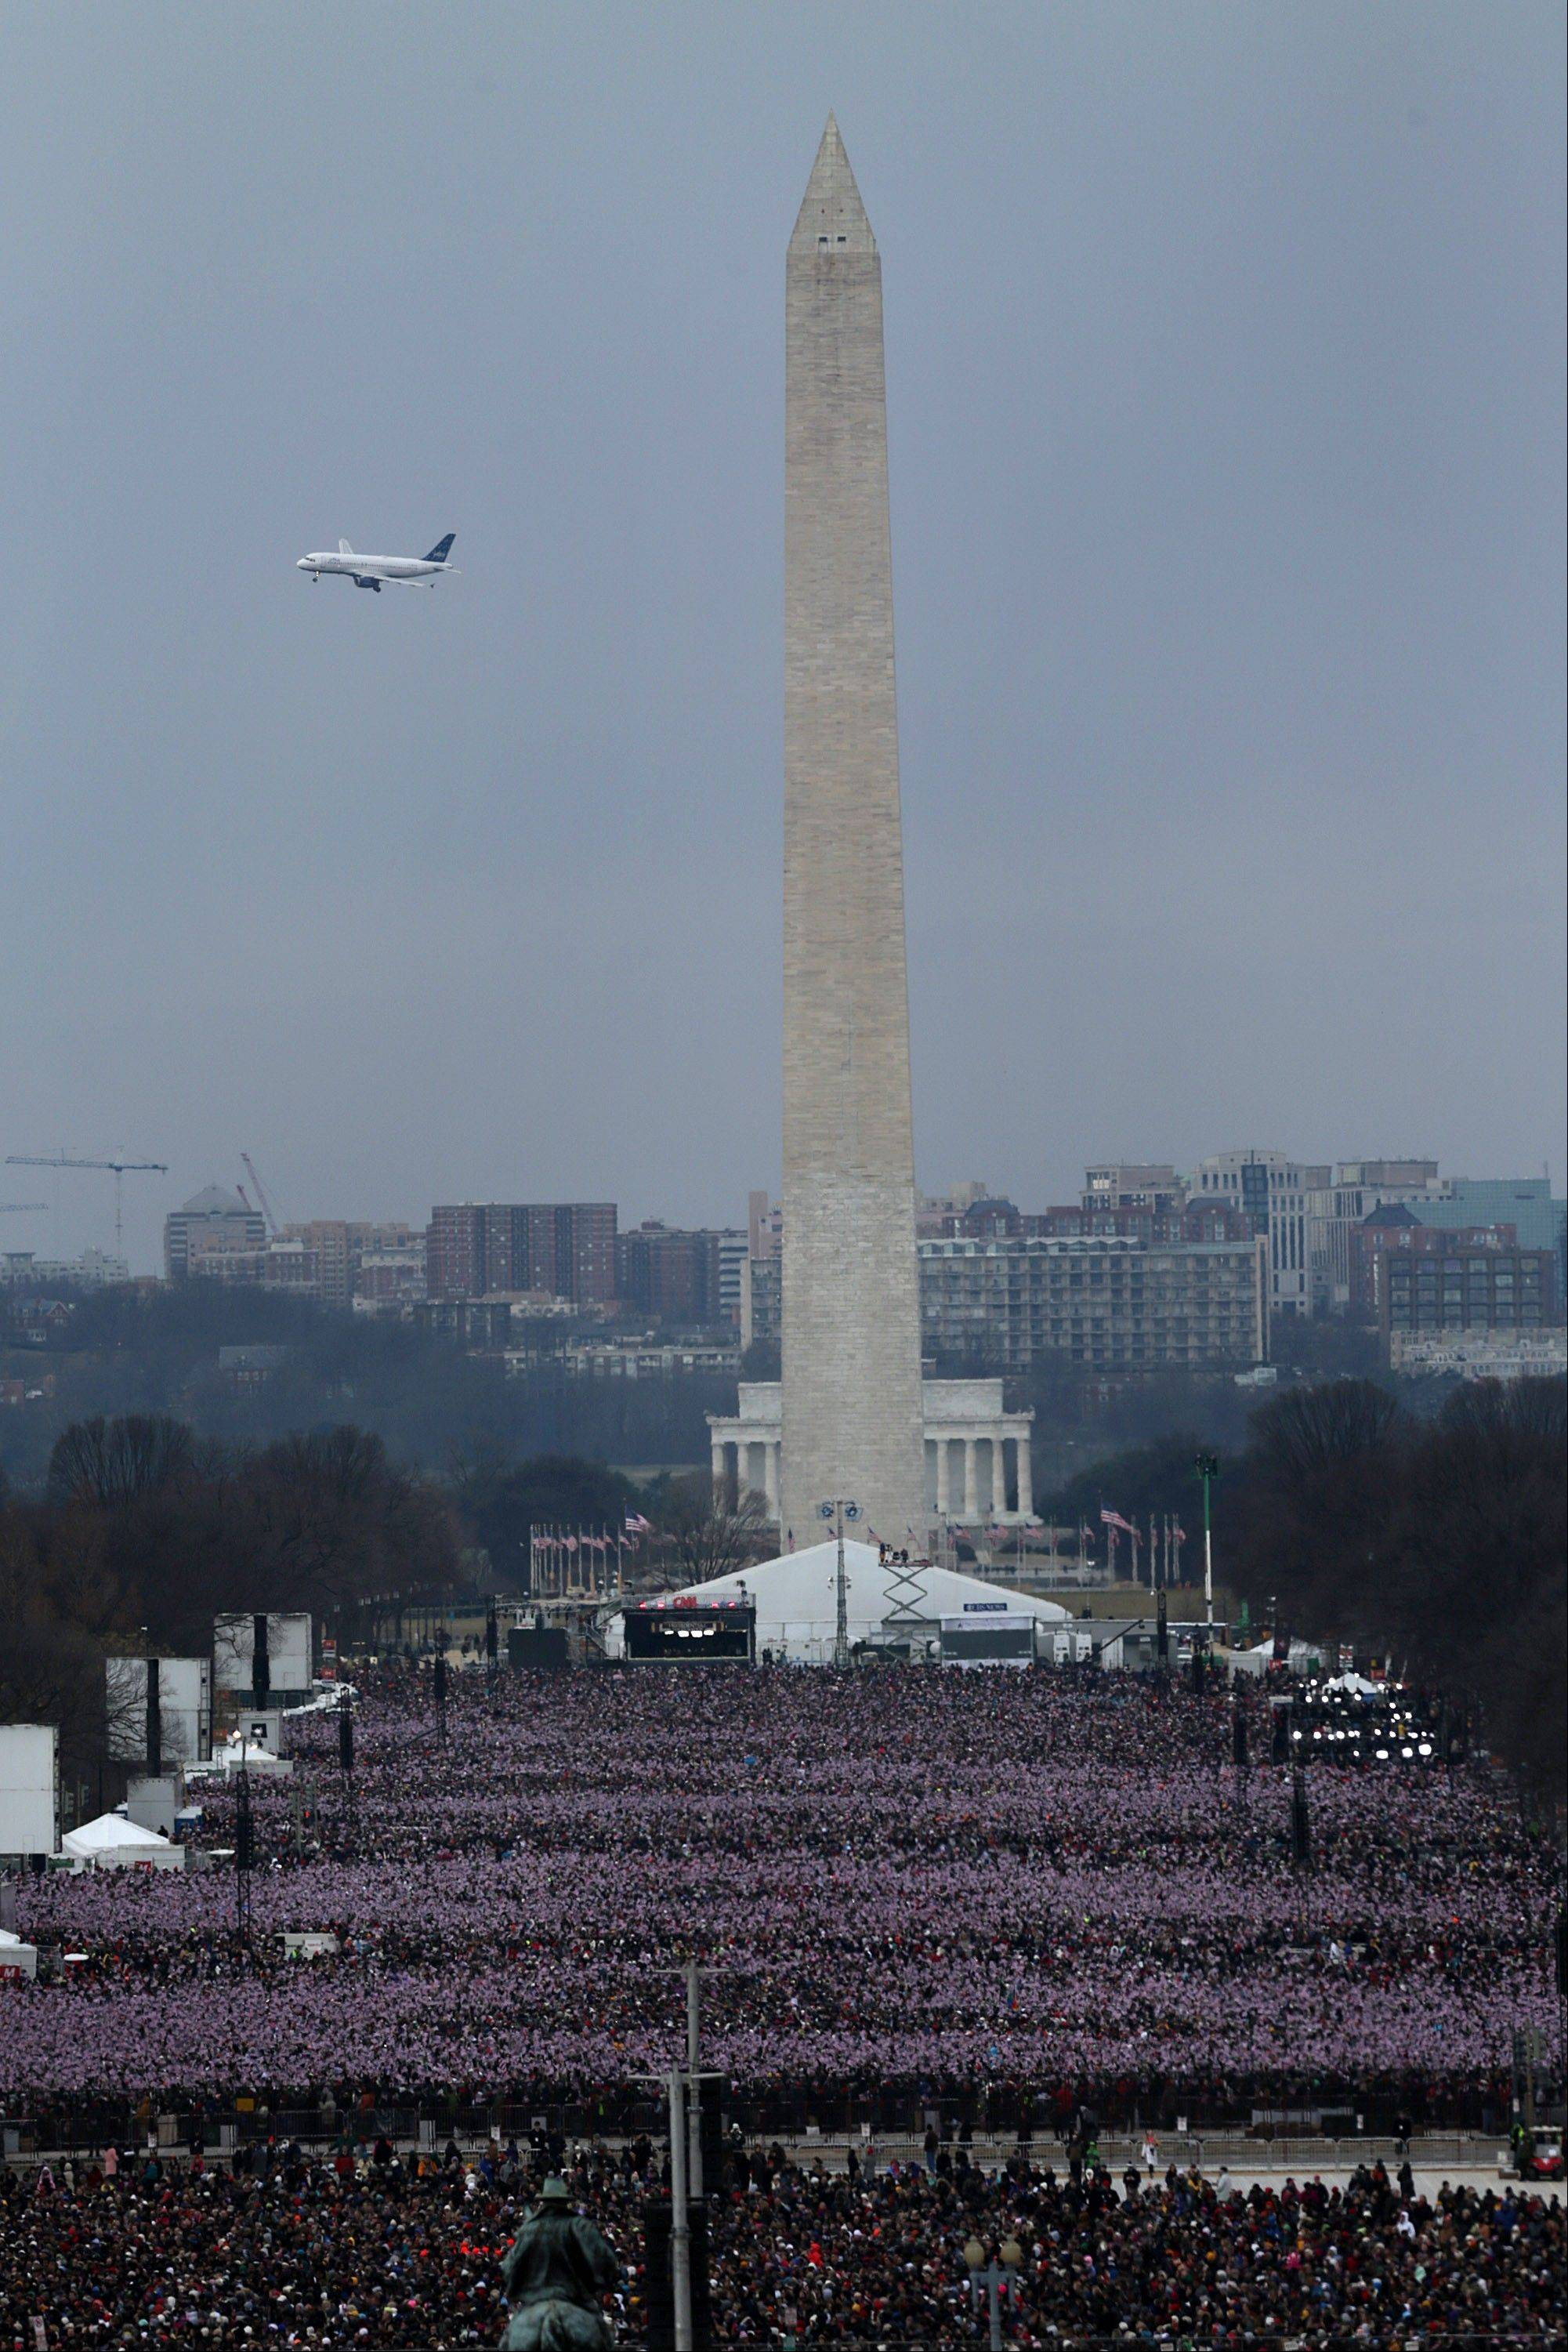 A plane flies overhead as attendees gather near the Washington monument during the U.S. presidential inauguration in Washington, D.C., U.S., on Monday, Jan. 21, 2013.